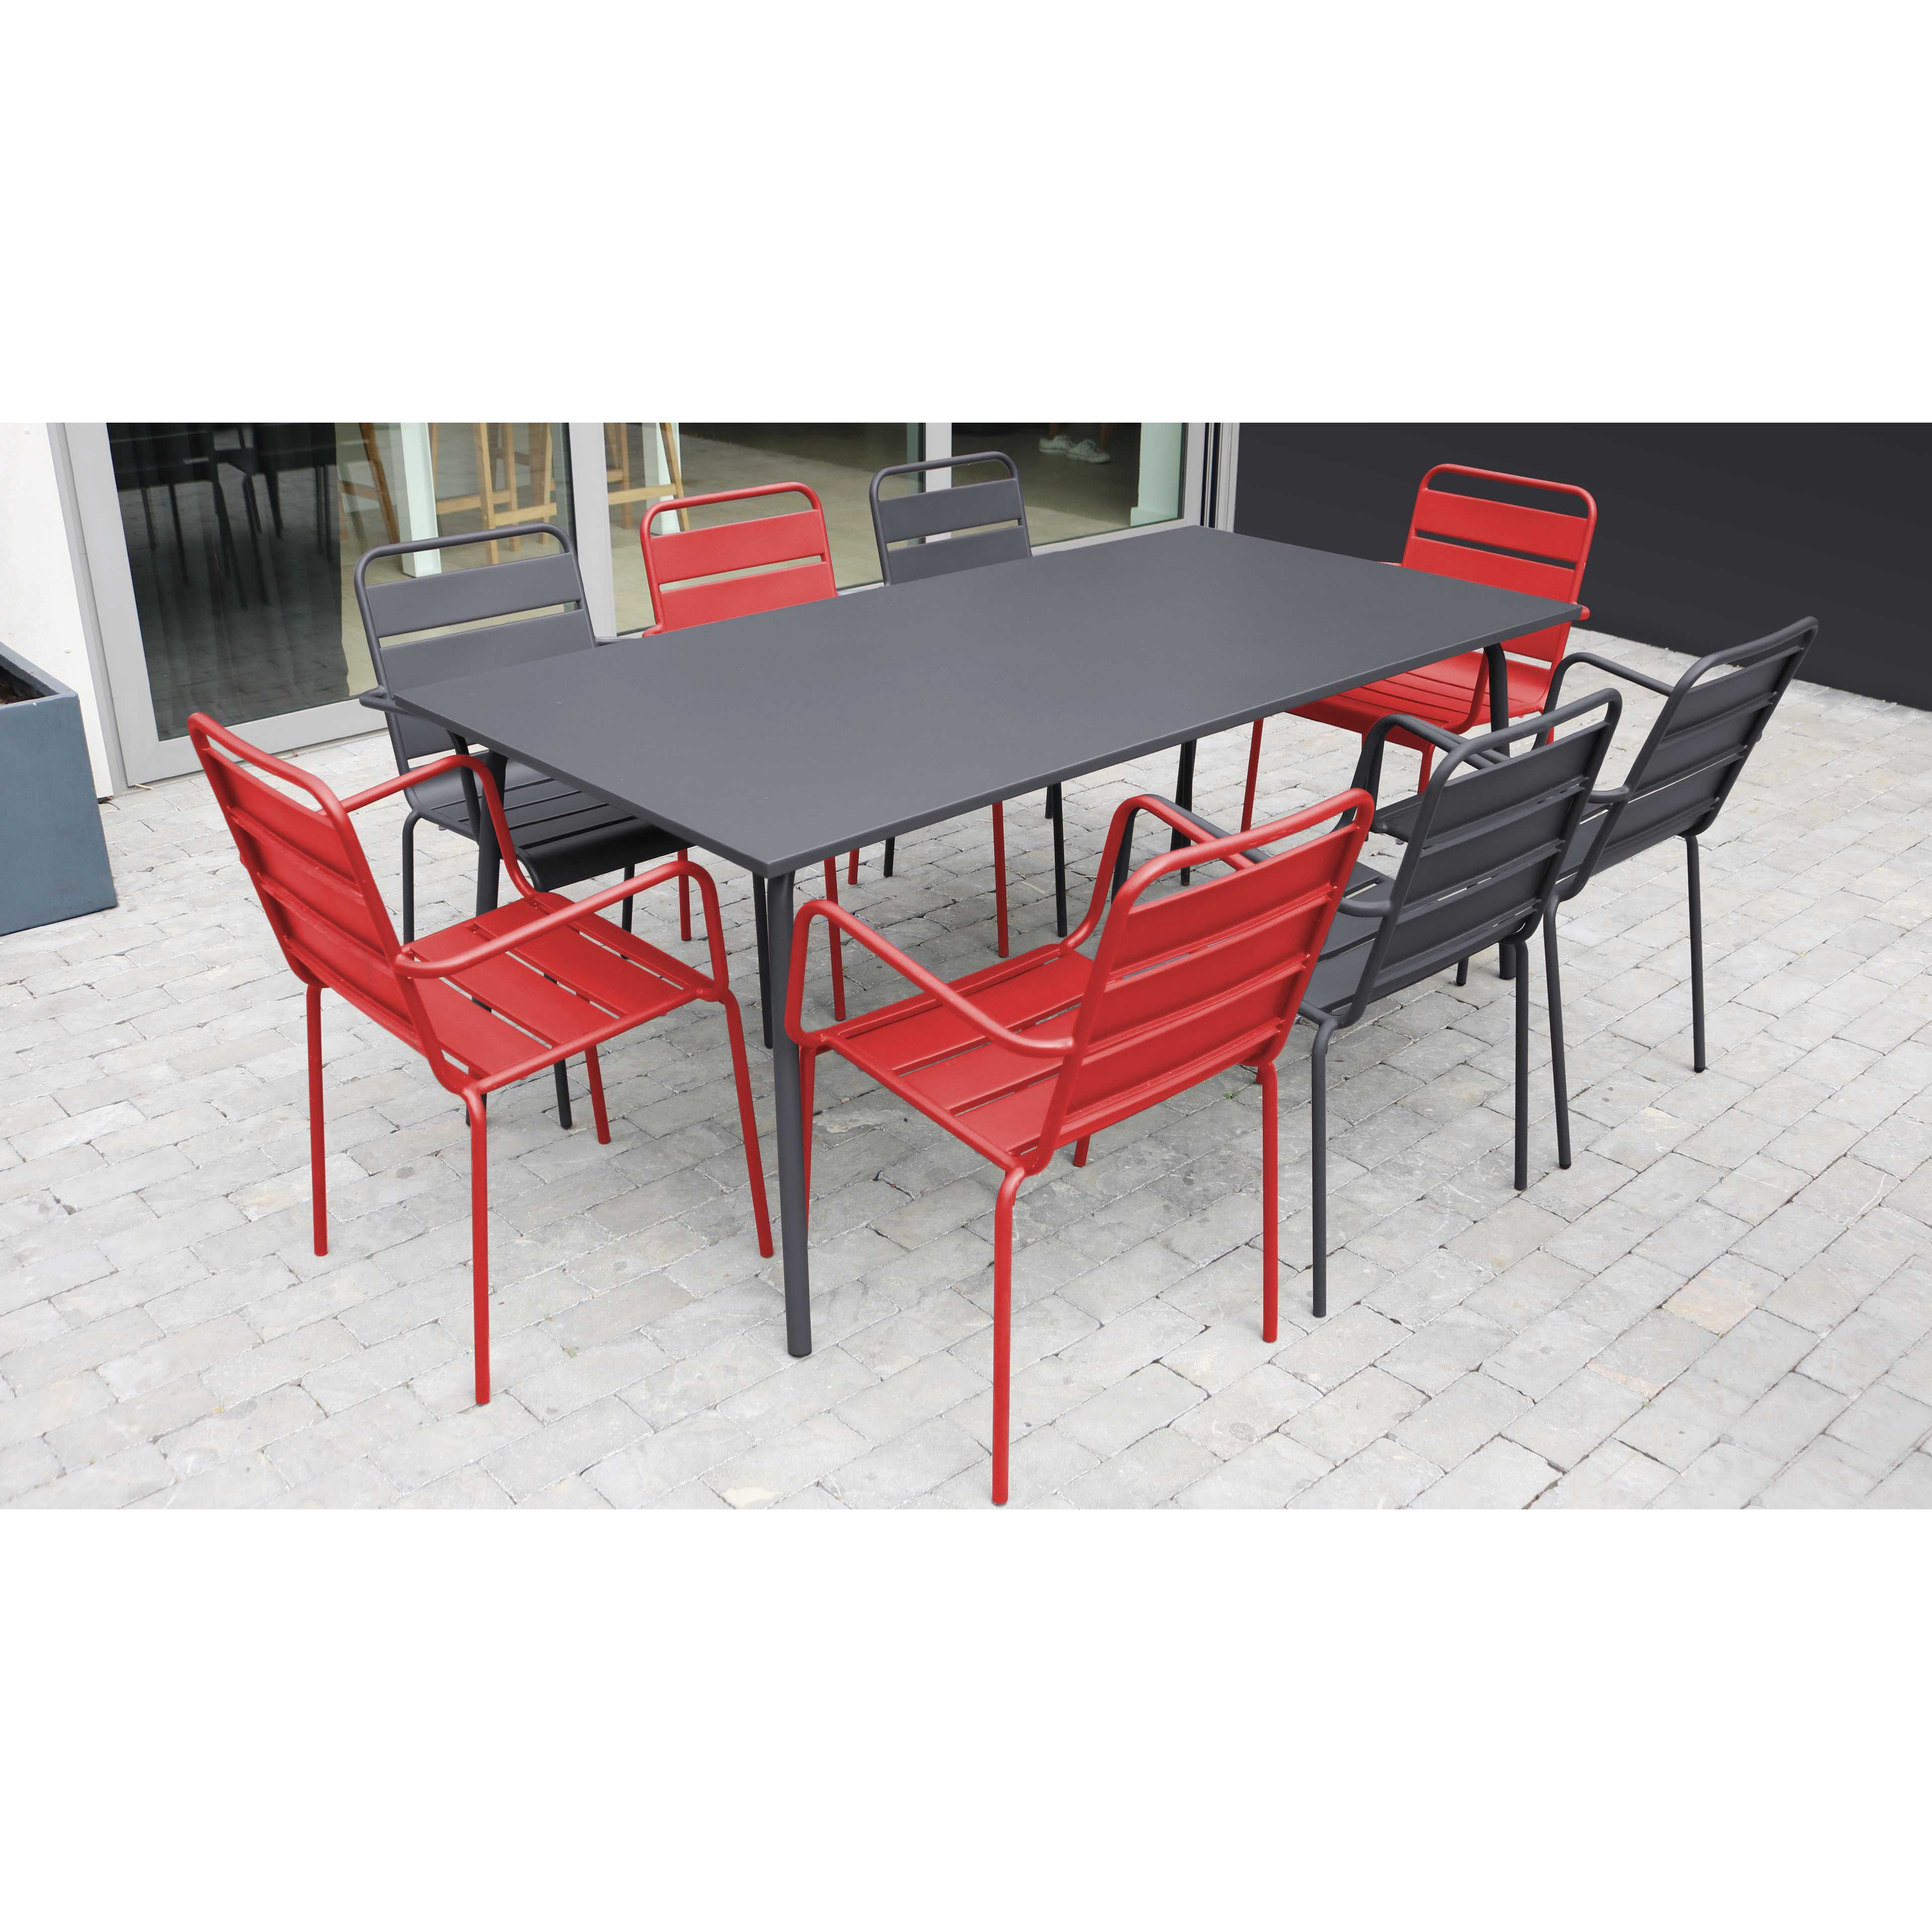 4d1cb78bd64 ... Table de jardin métal chaise grise chaise rouge ...